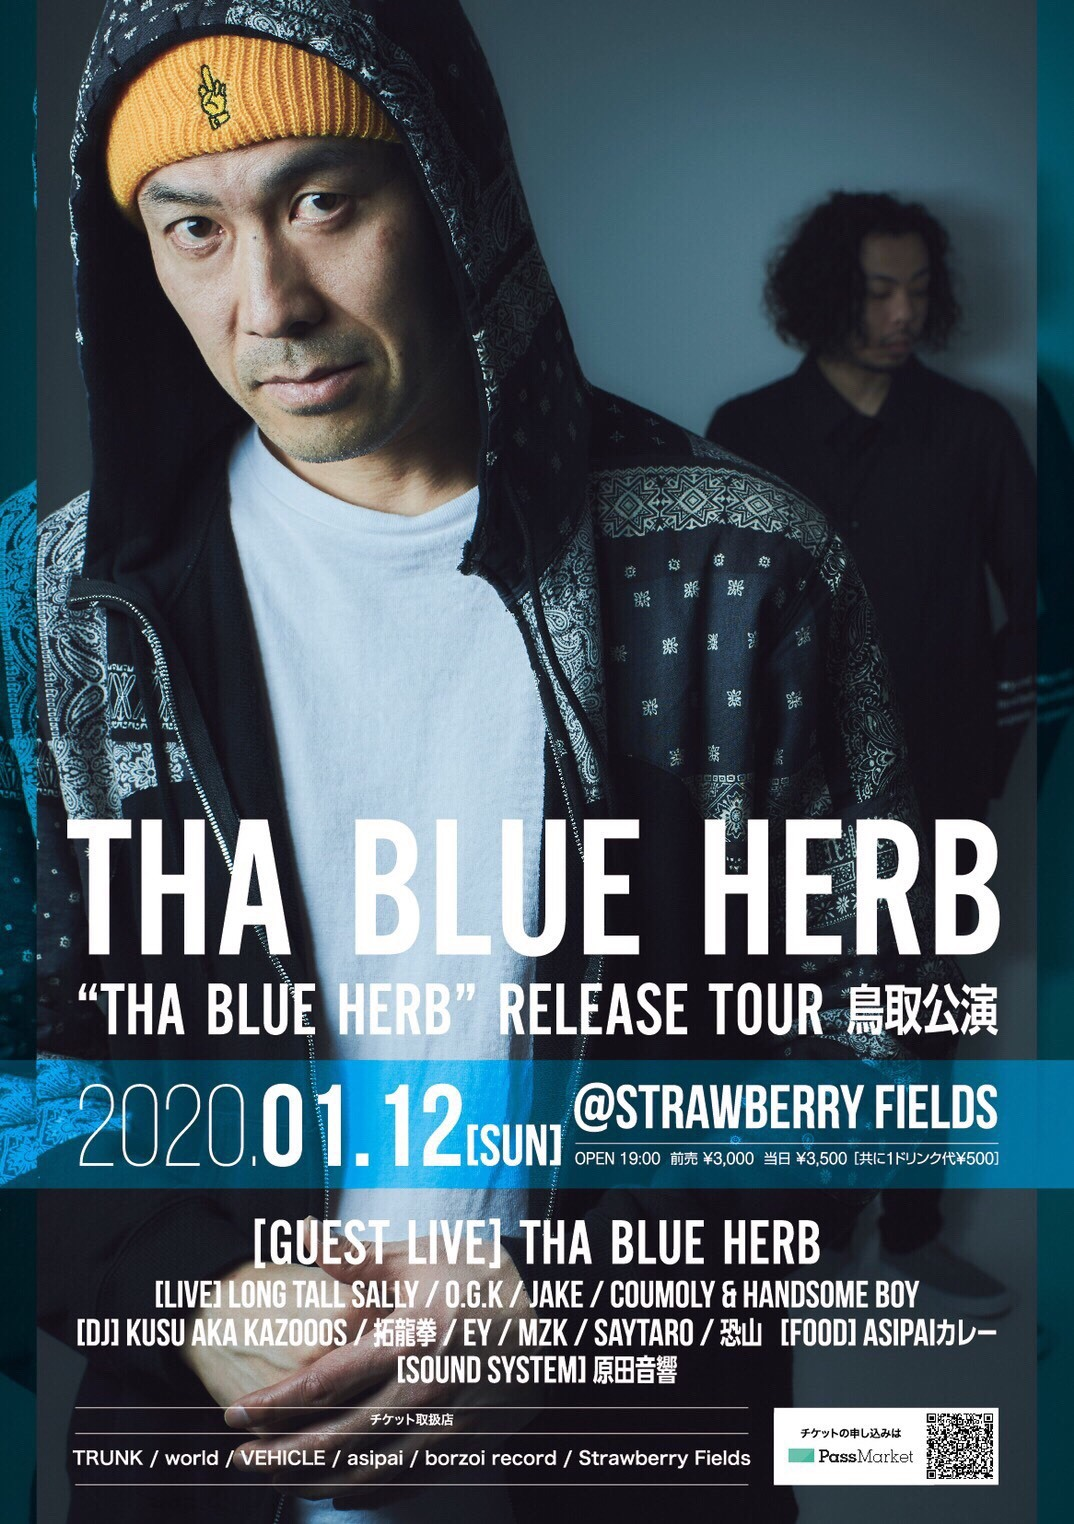 THA BLUE HERB RELESE TOUR 鳥取公演 (2020.01.12@STRAWBERRY FIELDS) レポ_e0115904_23004794.jpg